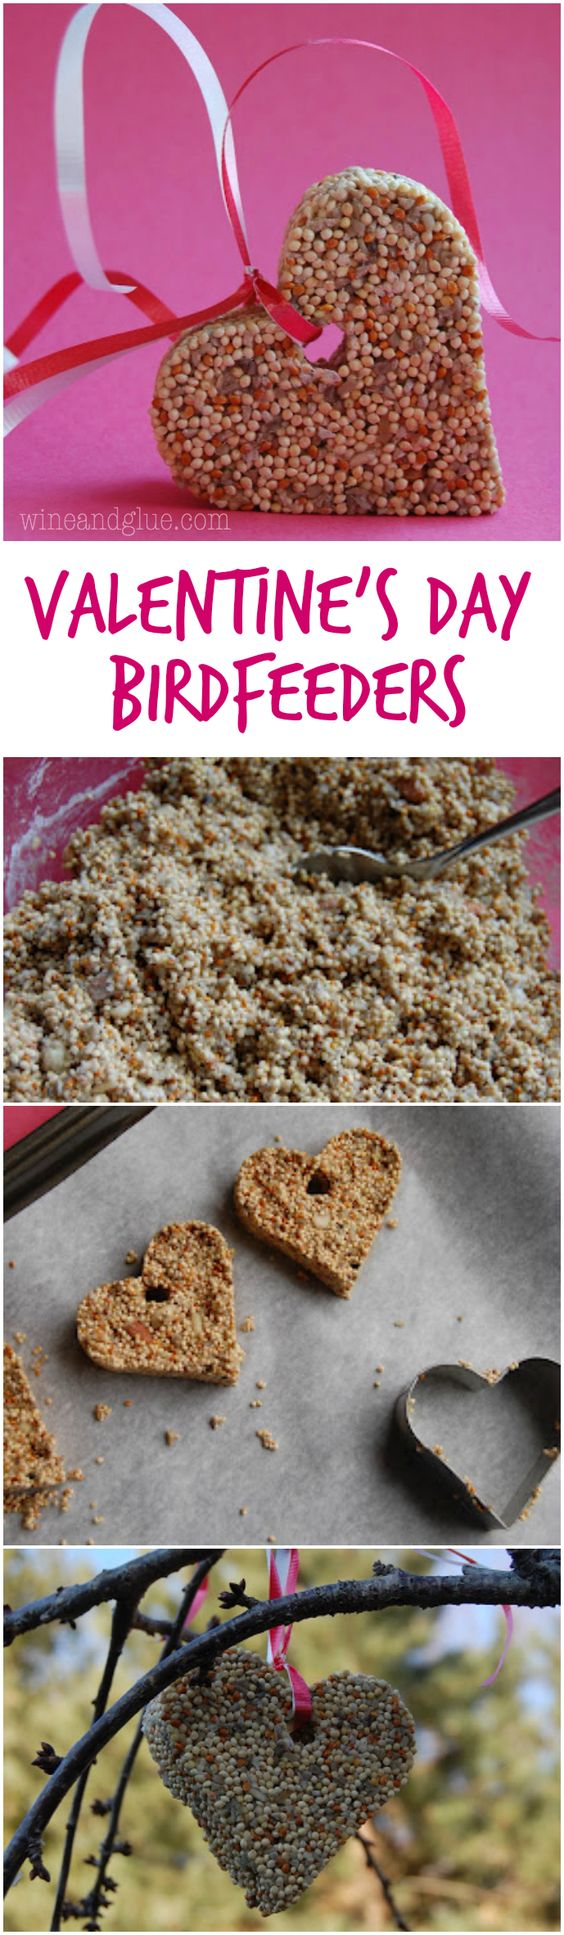 Valentine's Day Bird Feeders | www.wineandglue.com | Simple craft and make for a cute little gift!: